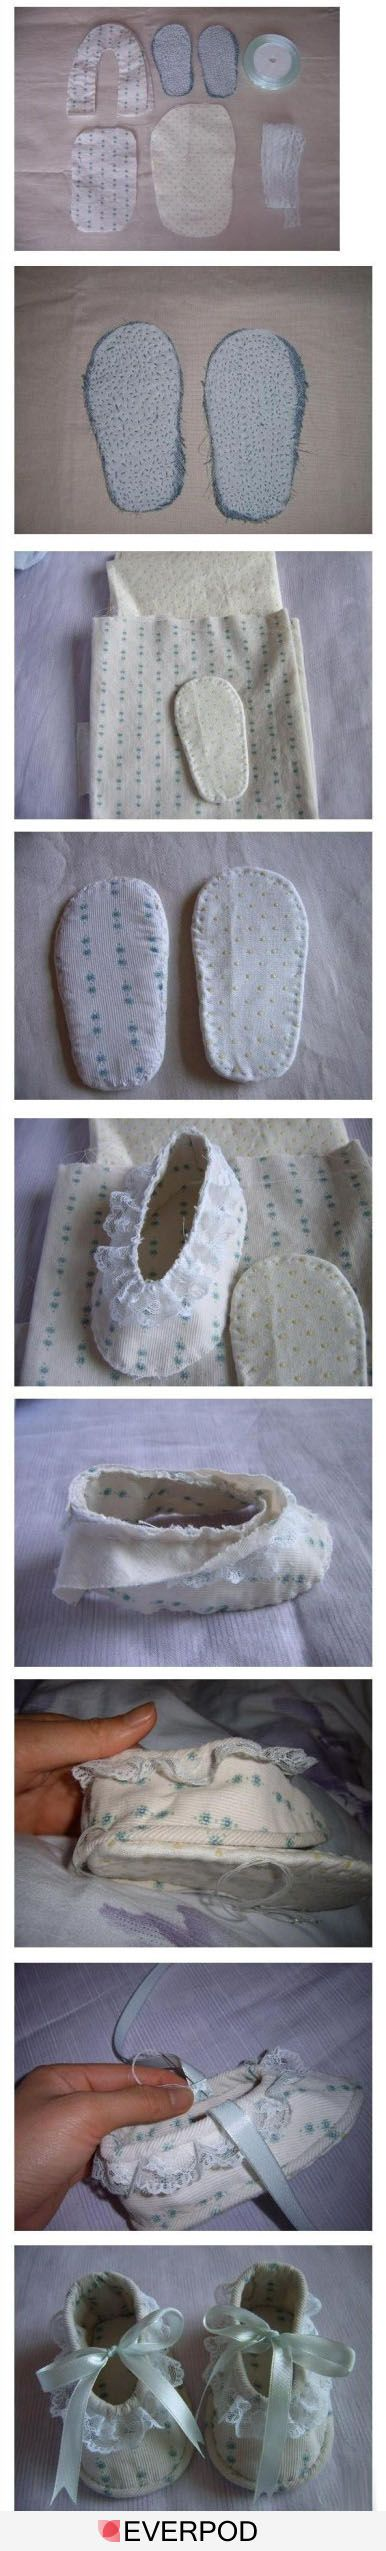 DIY BABY SHOES IDEAS